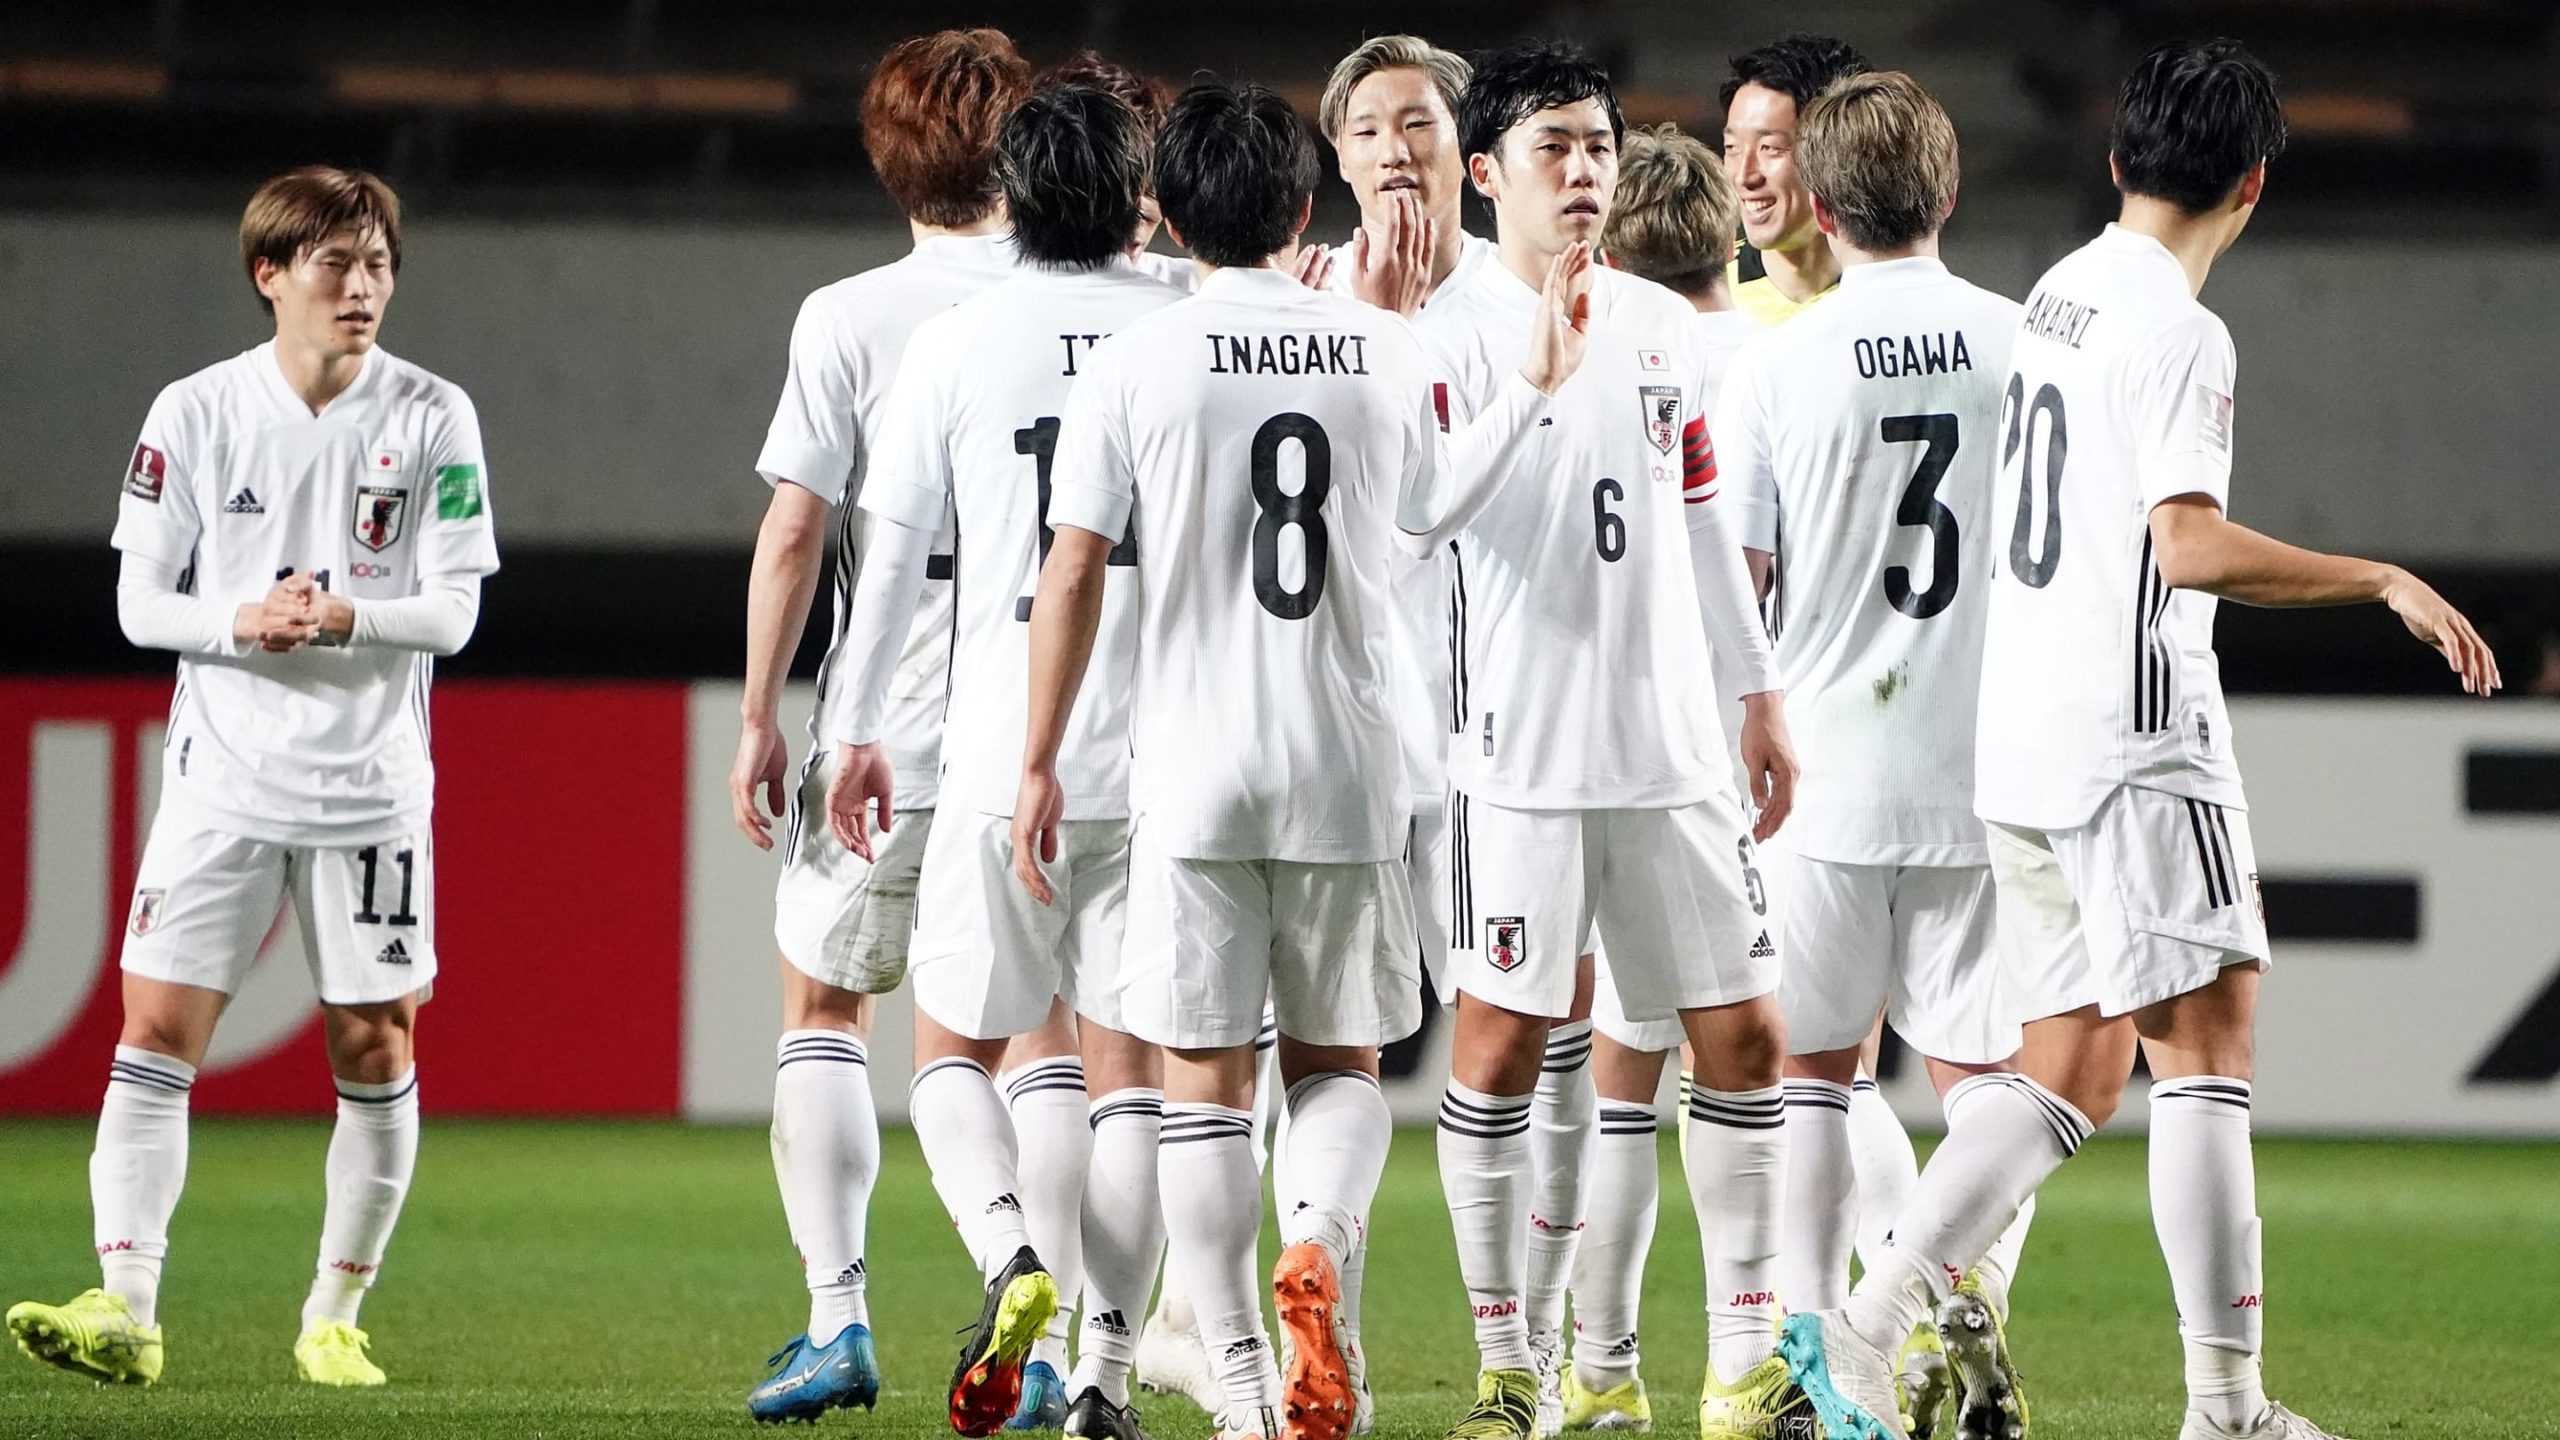 japan-walk-goal-angry-in-14-0-world-cup-qualifying-own-over-mongolia.jpg